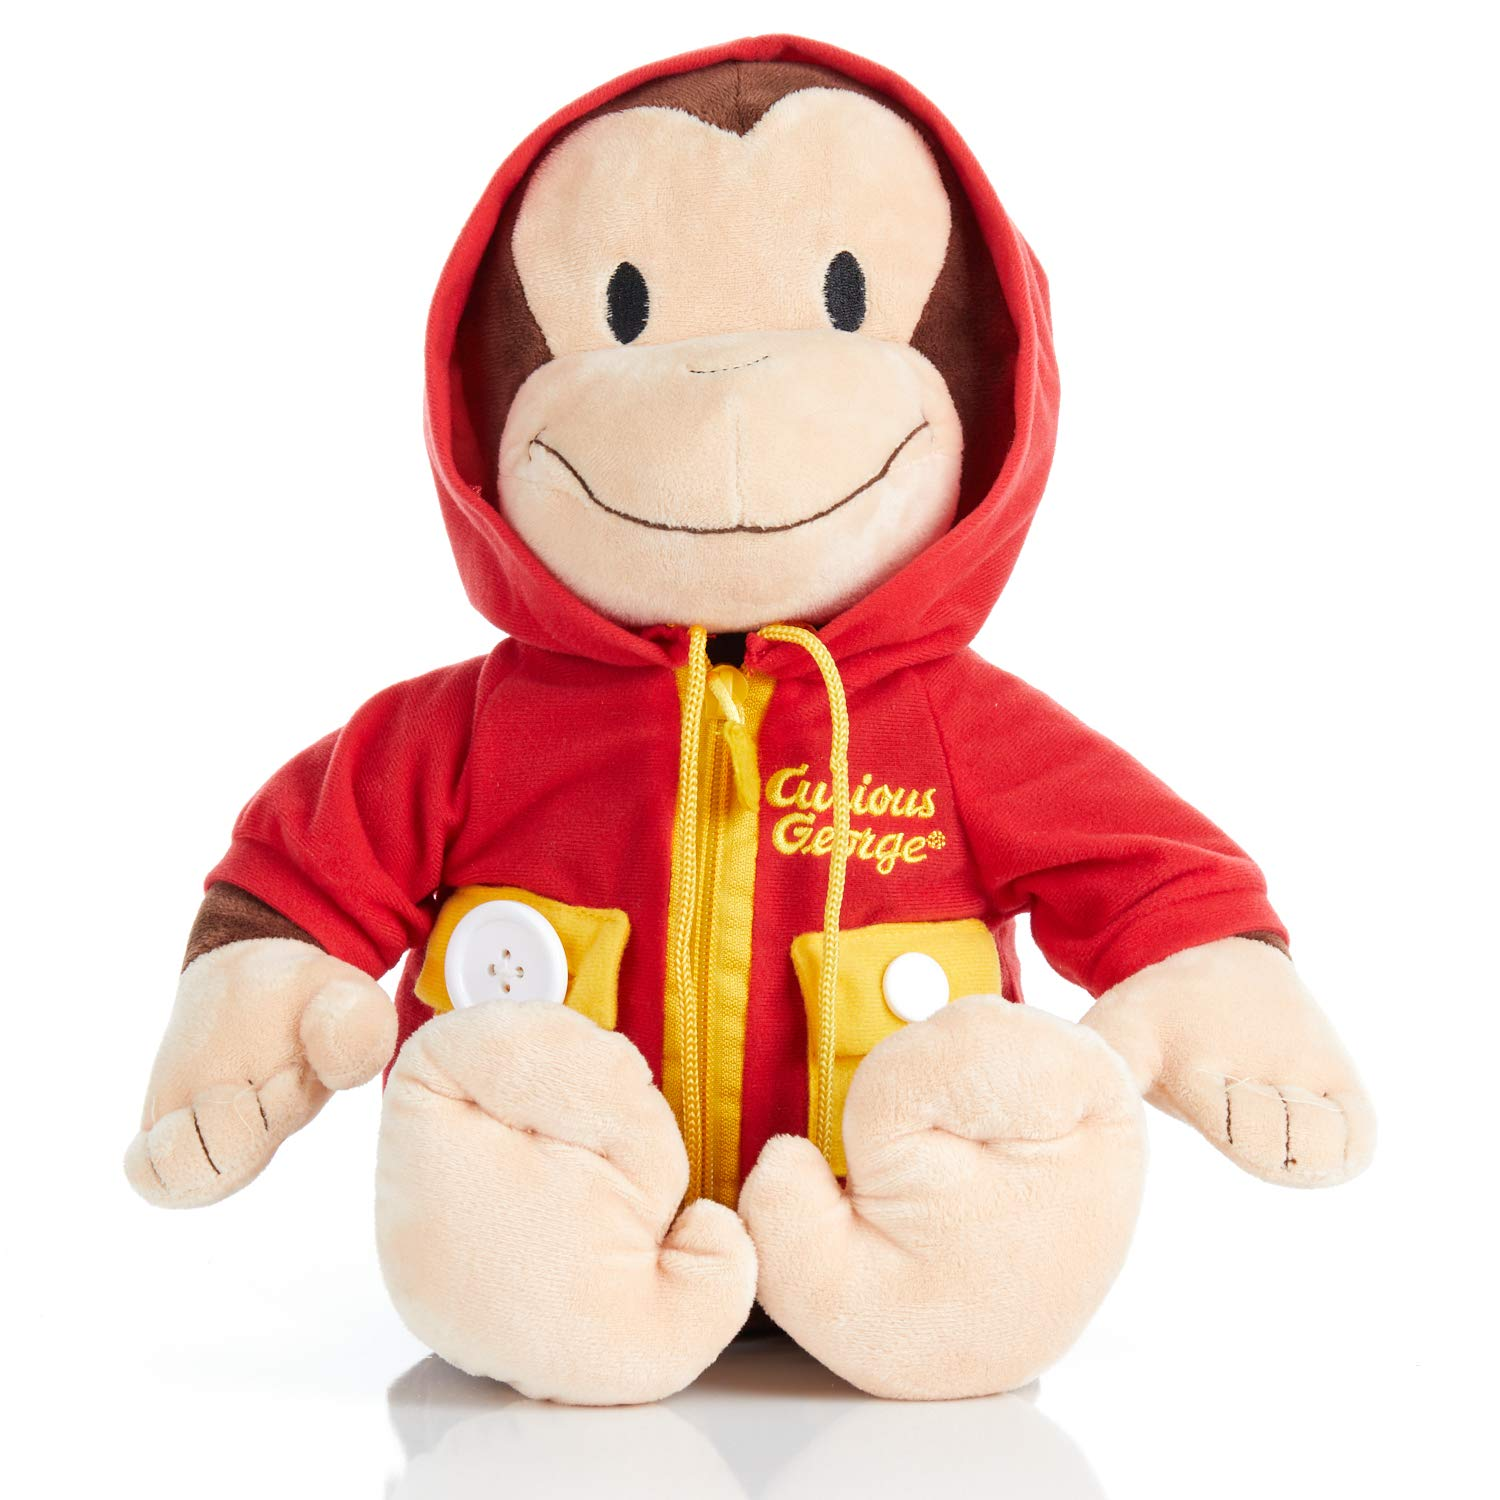 KIDS PREFERRED Curious George Learn to Dress Stuffed Animal